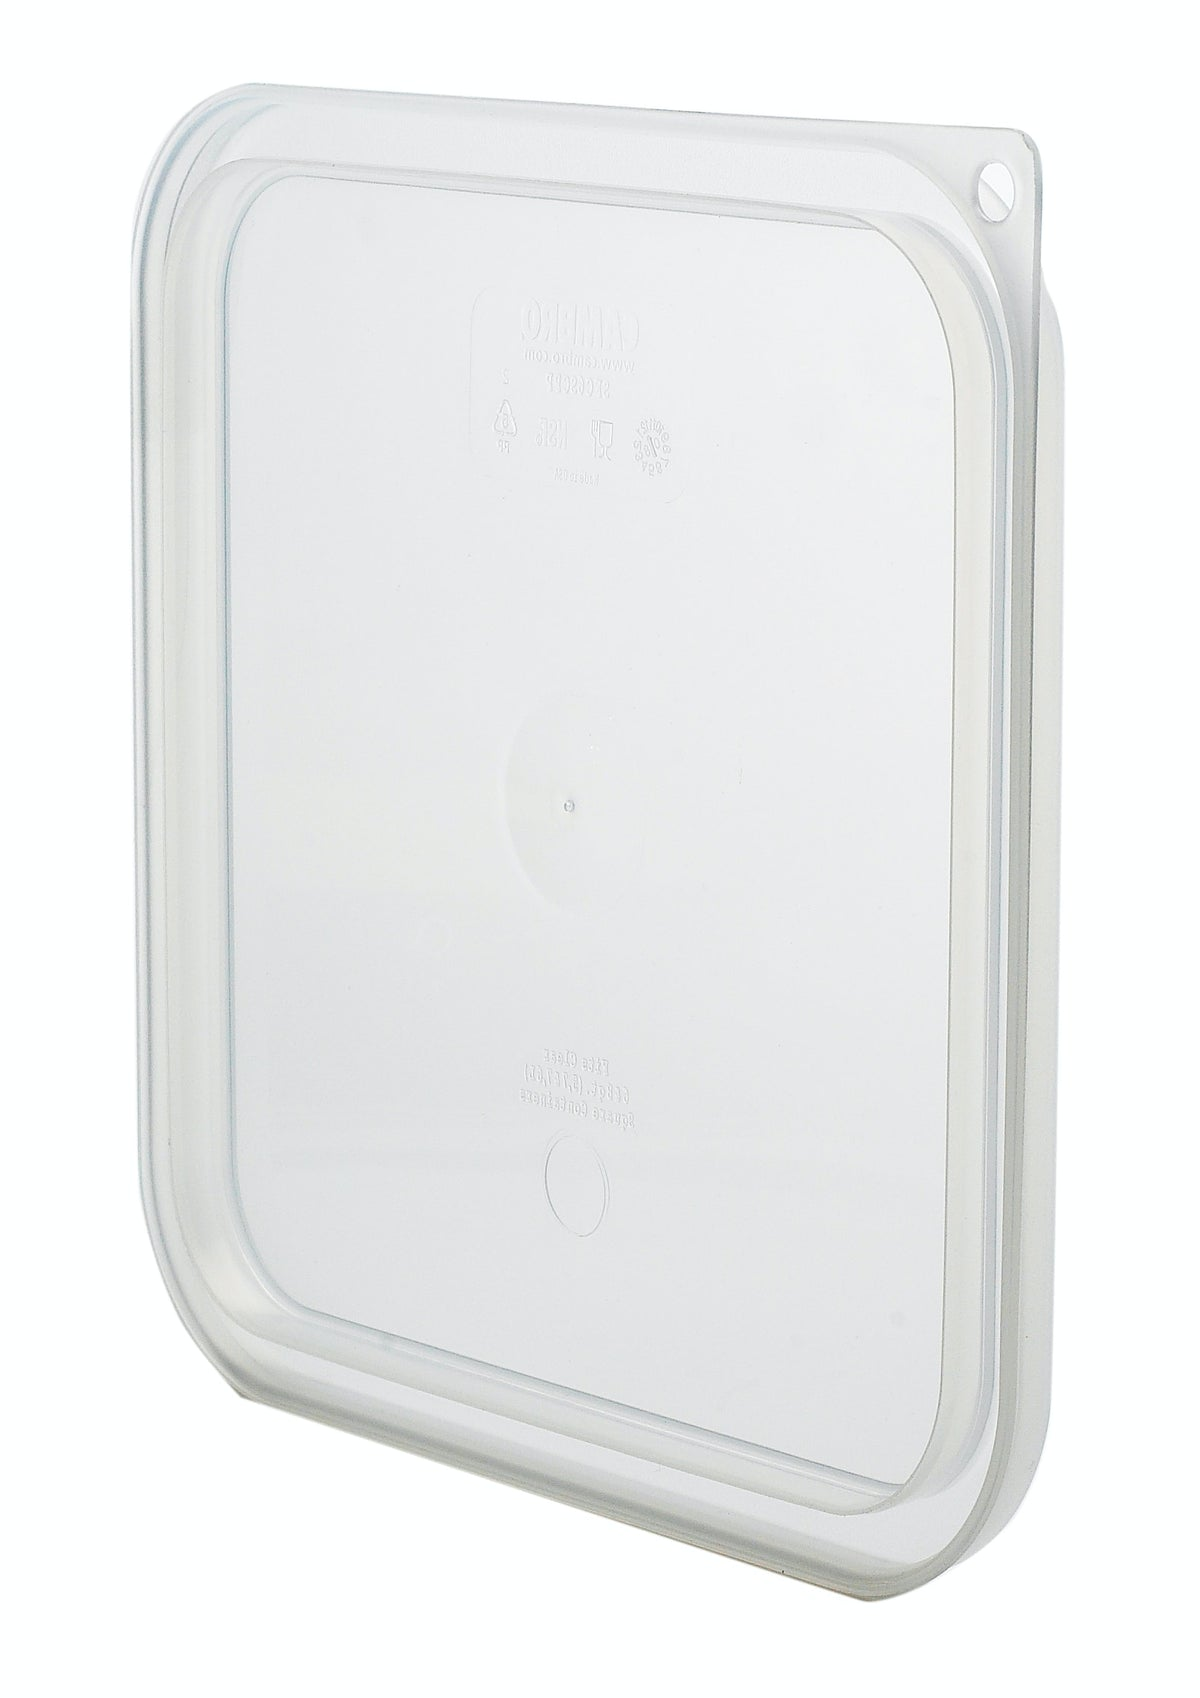 Food Square Seal Cover 6/8 qt